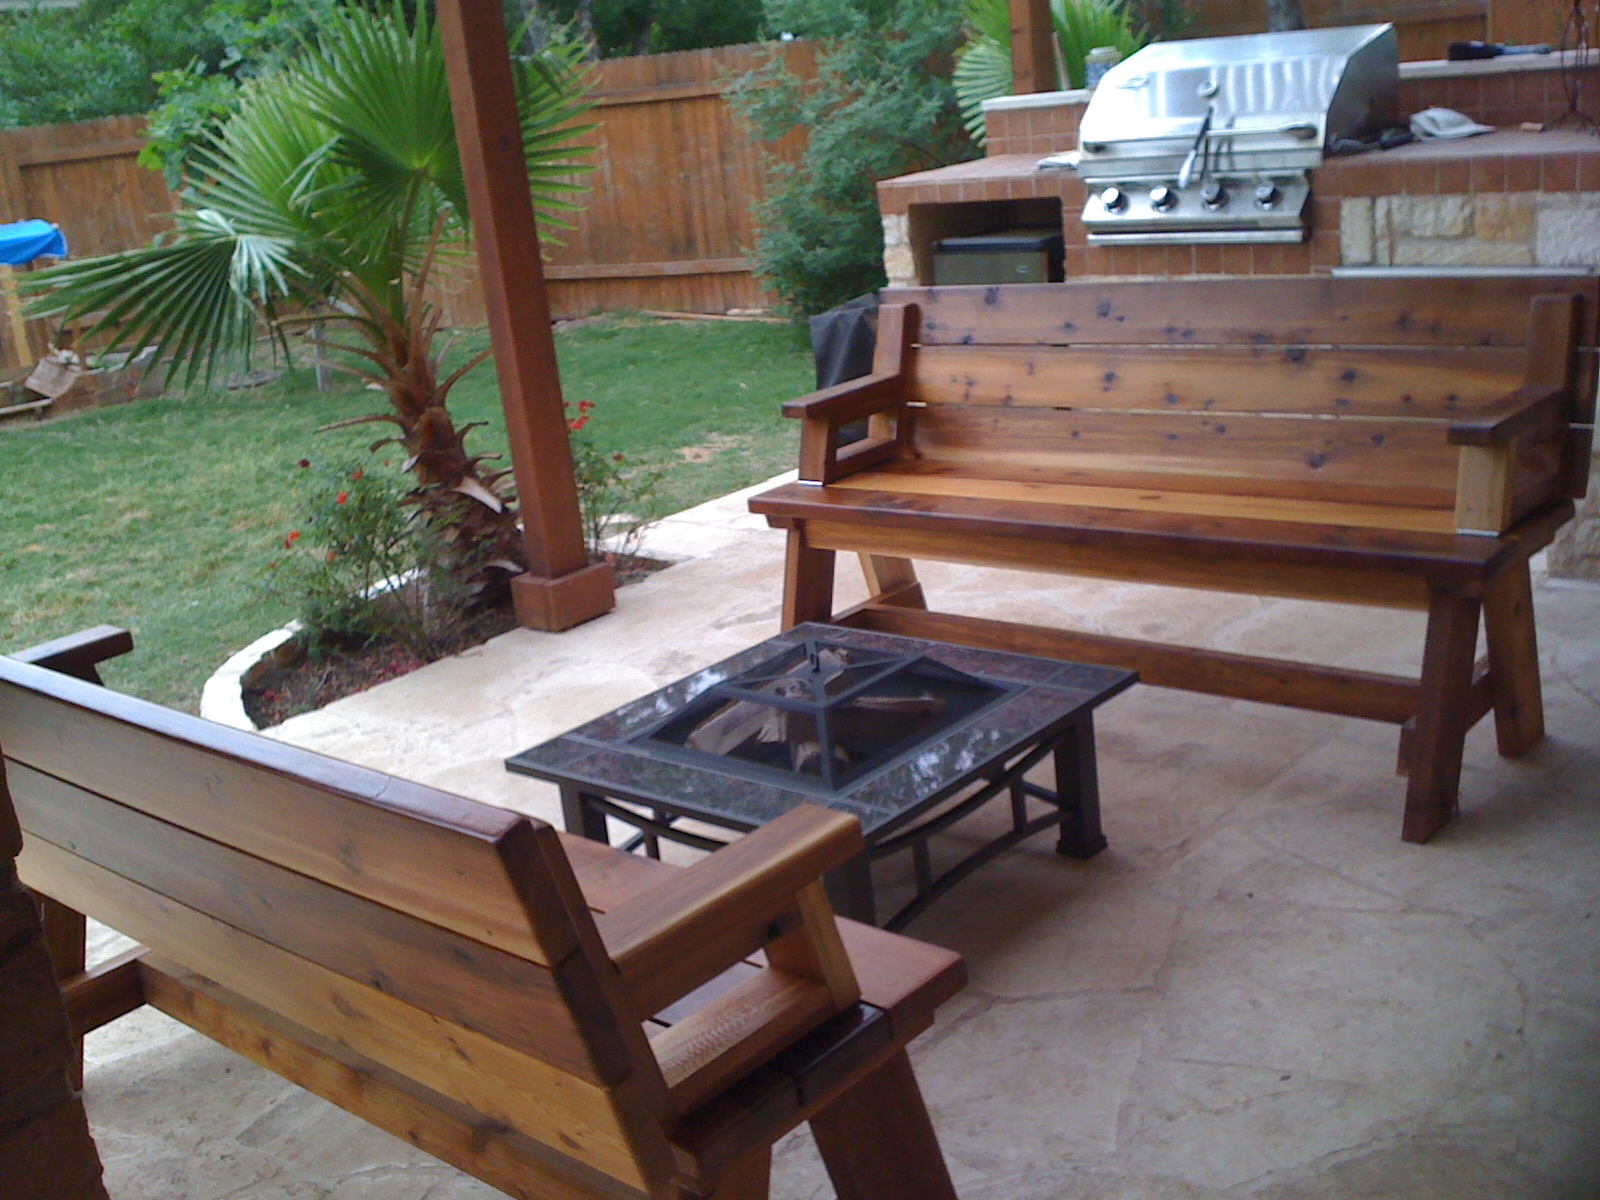 Best Woodworking Plan Site Fire Pit Benches Wooden Plans